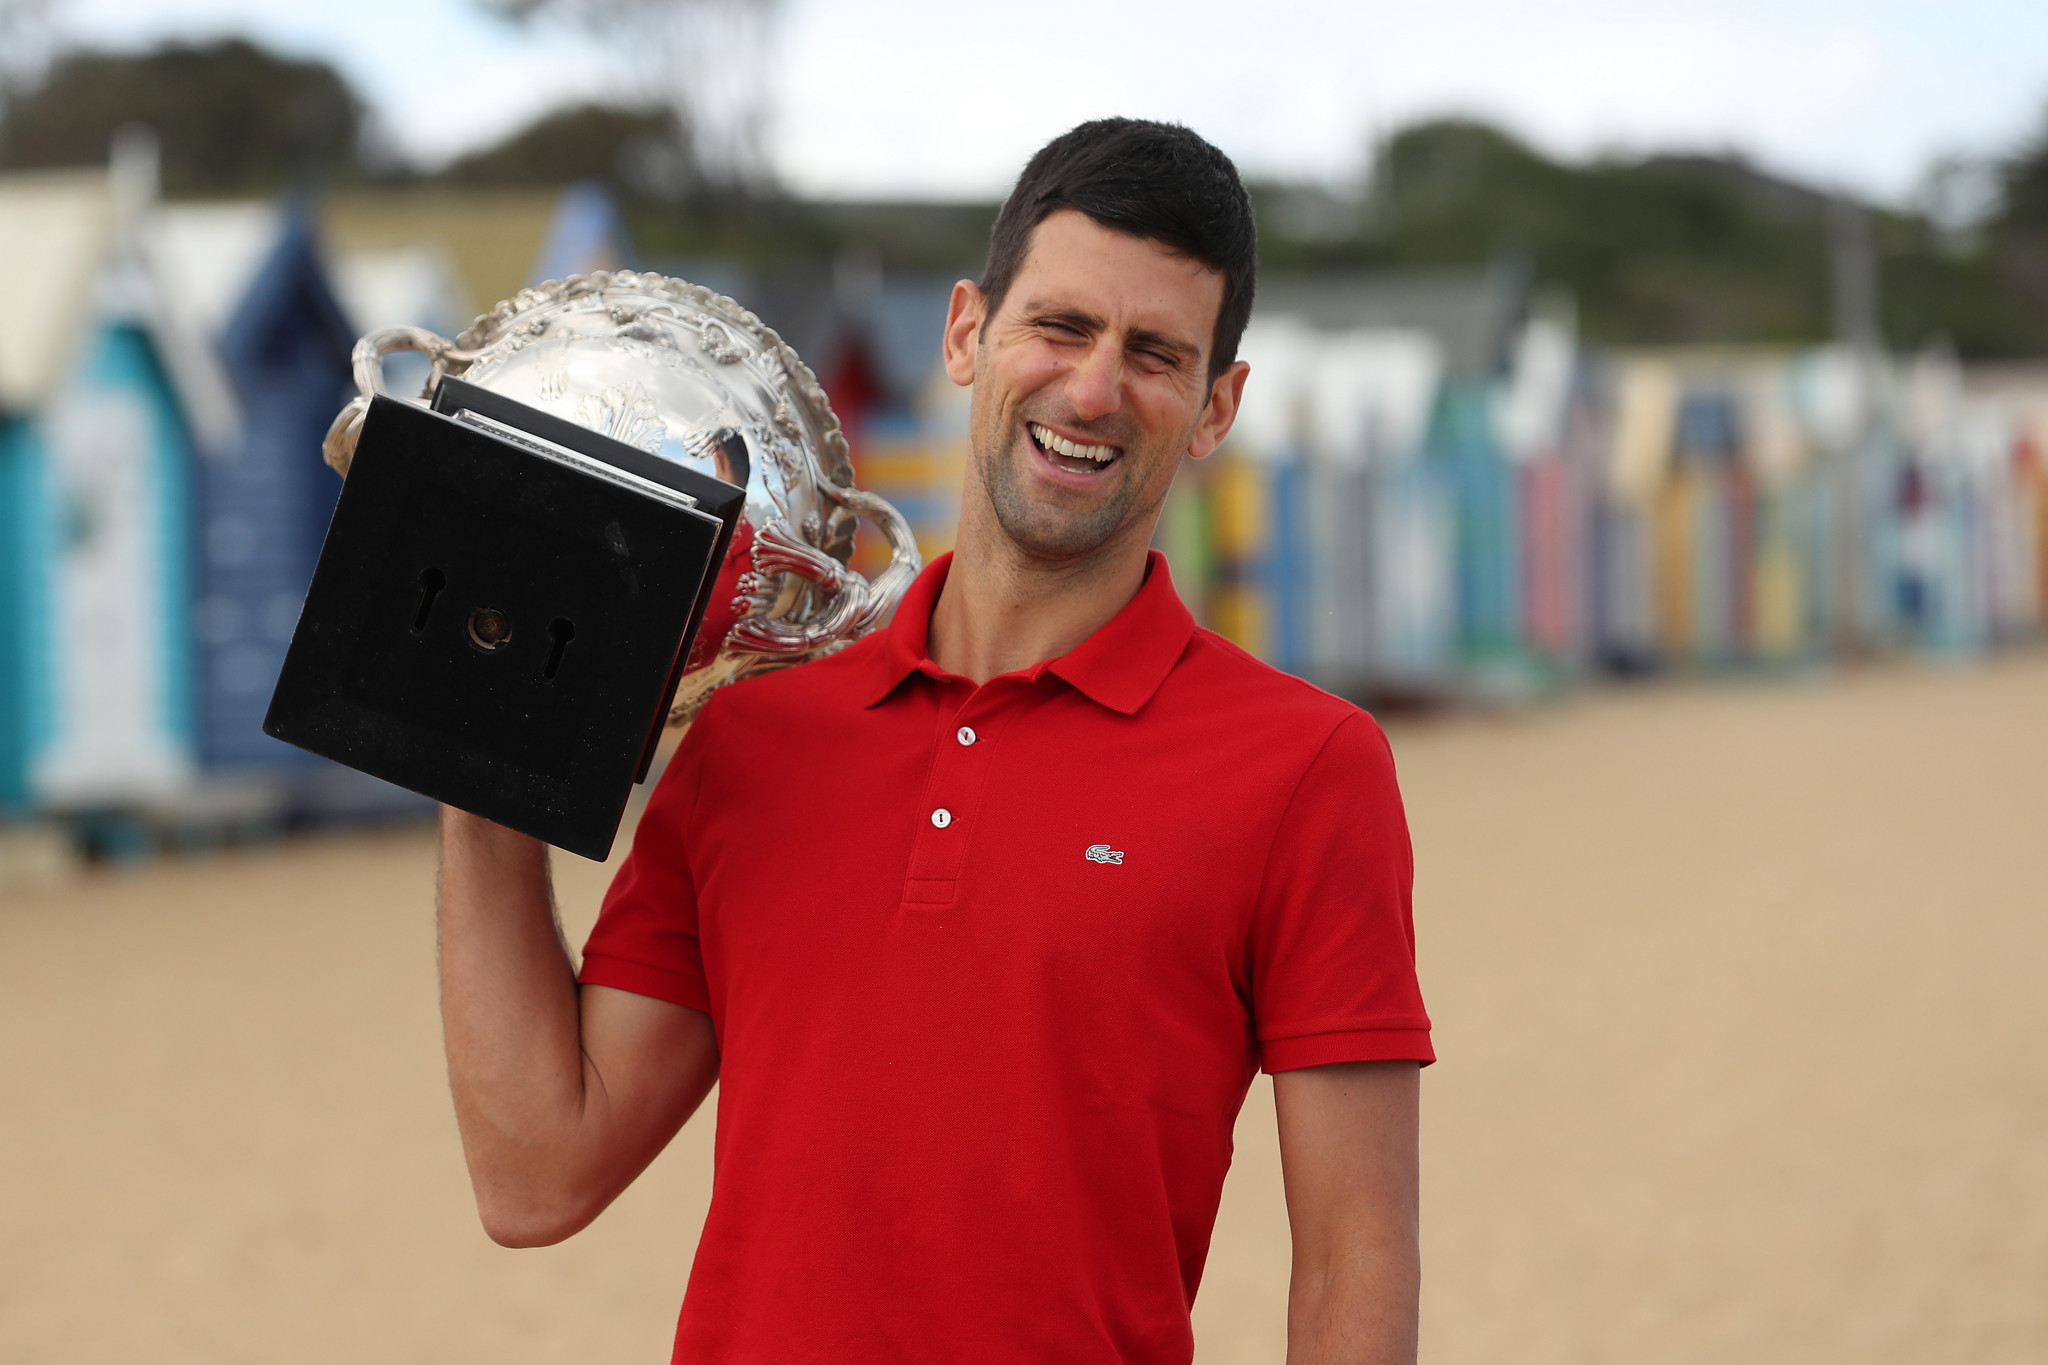 Novak Djokovic will compete for the first time since winning the Australian Open ©Getty Images